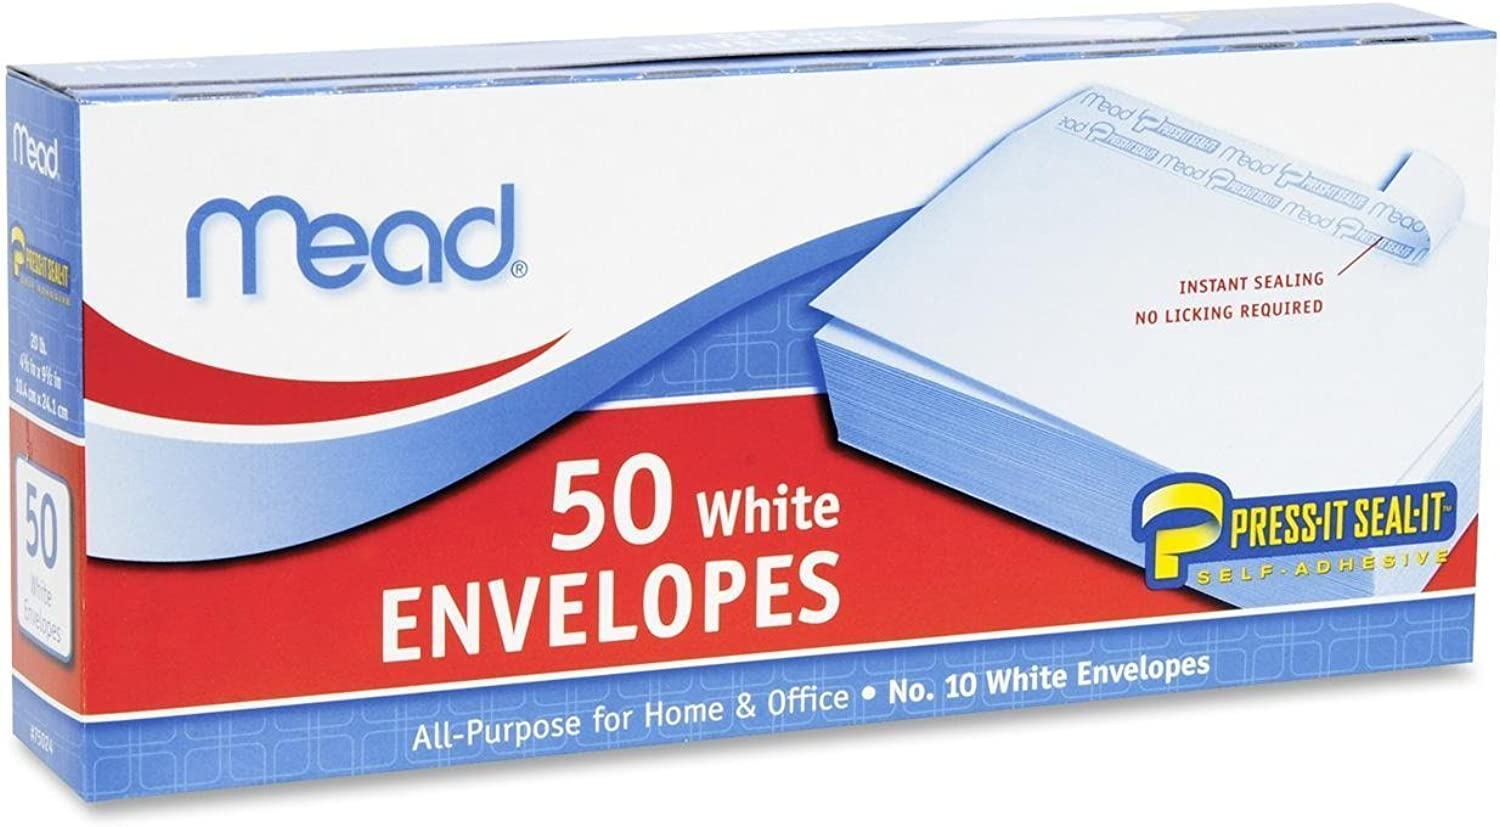 Mead Press-It Seal-It  10 10 10 Weiß Envelopes, 50 Count (75024)  100 Envelopes by Mead B00O7UGNE6 | Sale Online